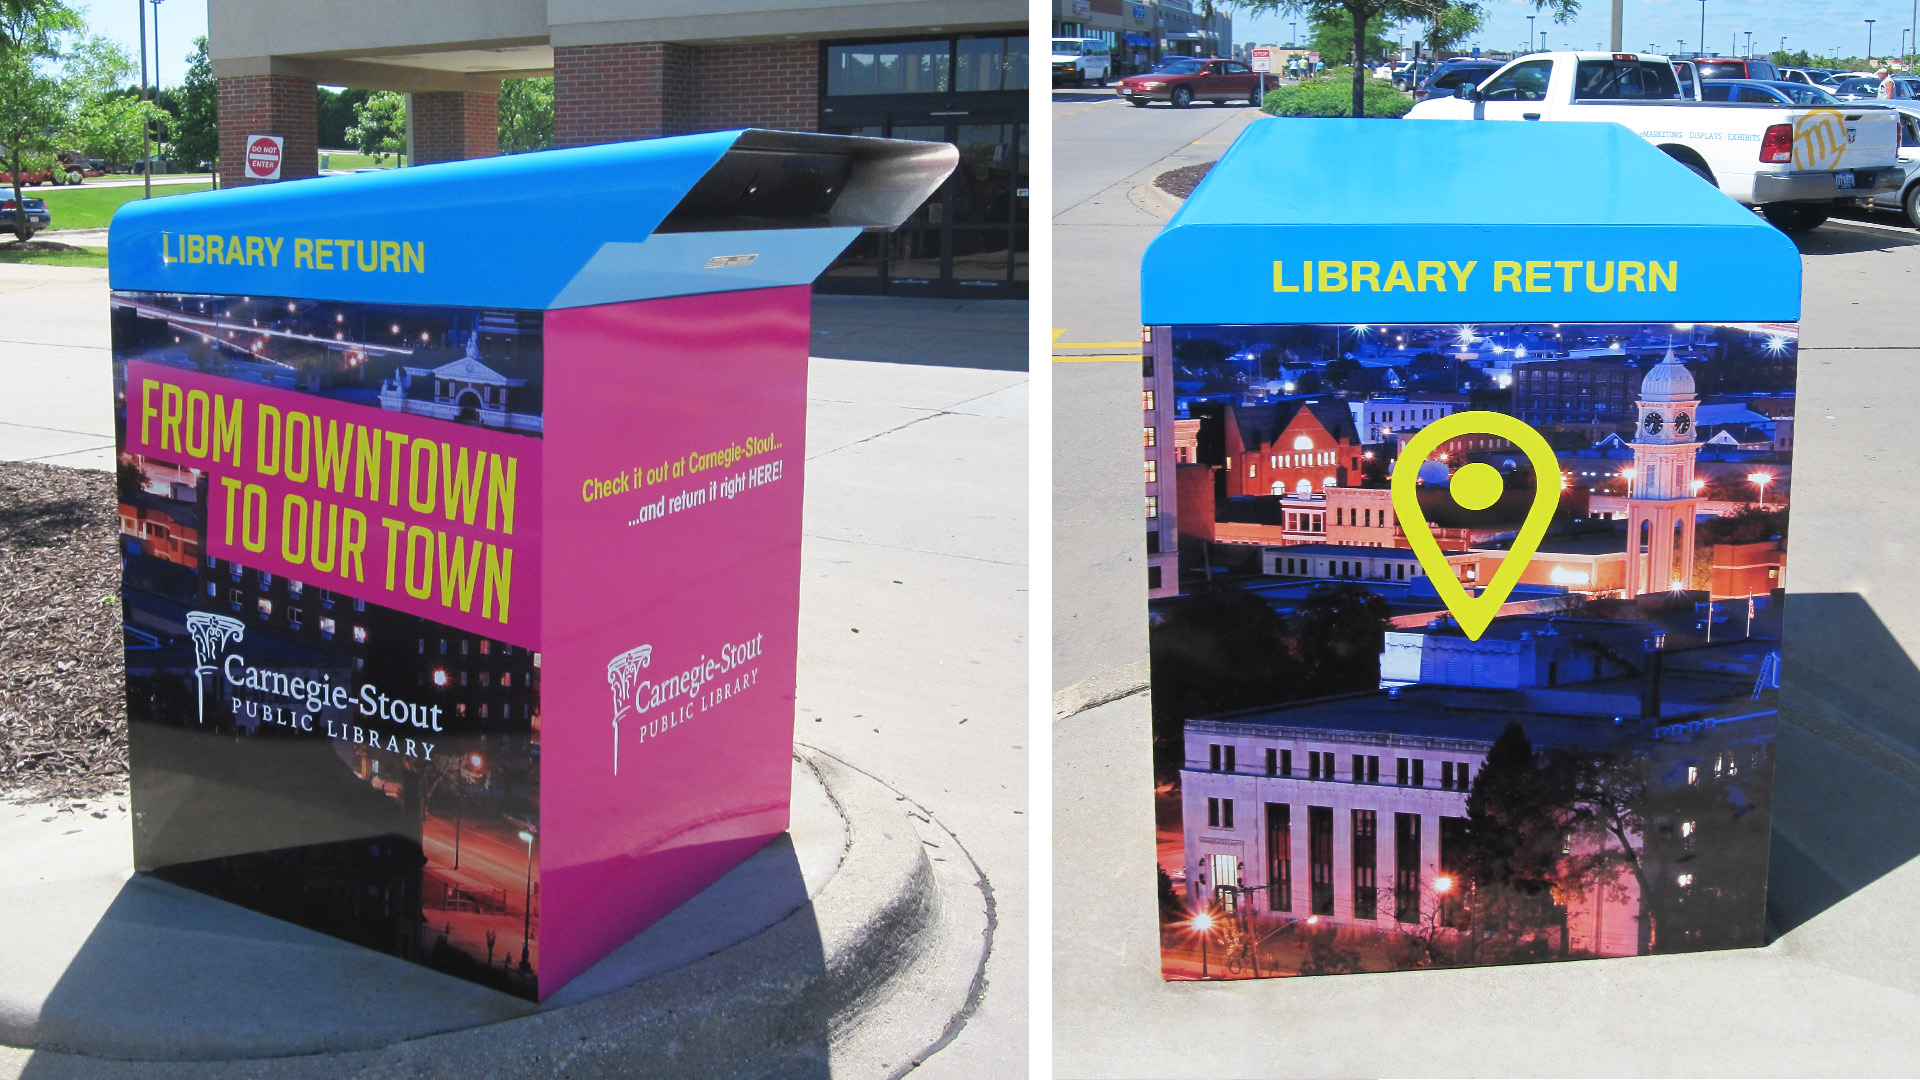 Carnegie Stout Public Library Book Drop Box Vinyl Wrap